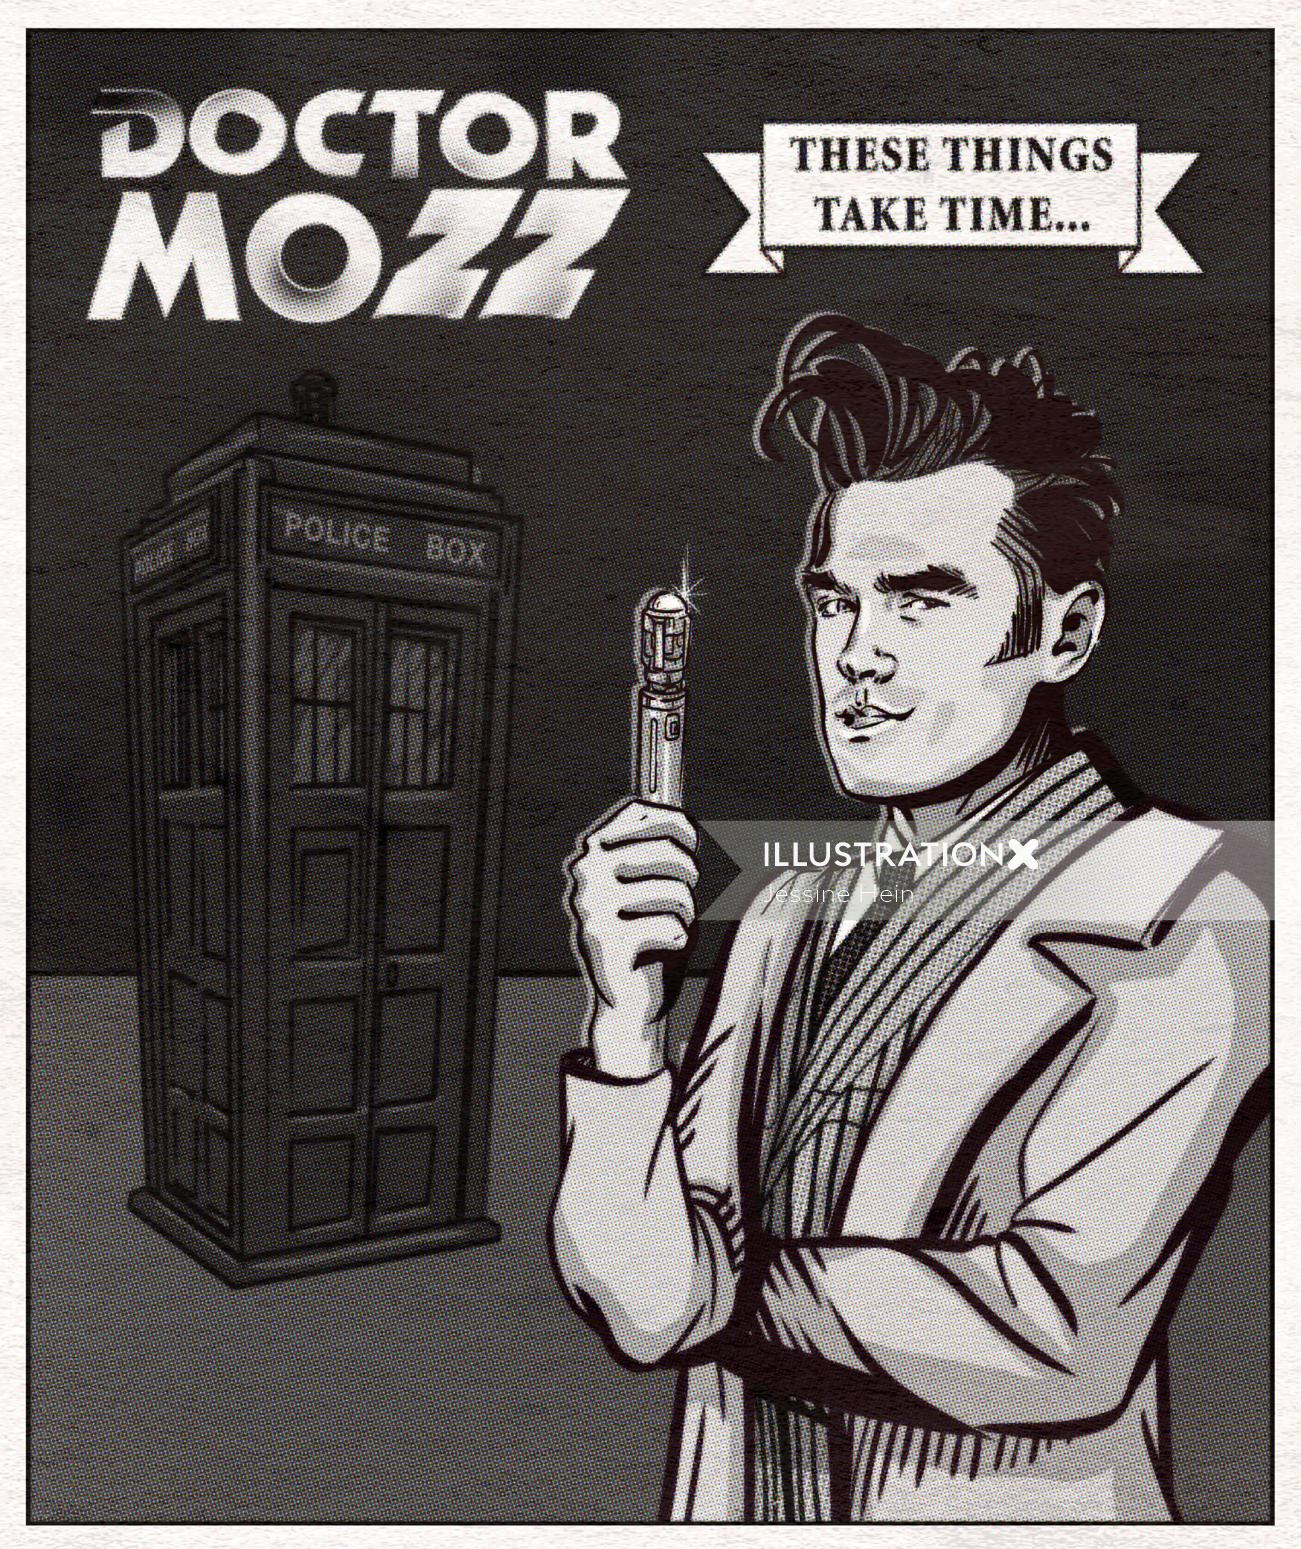 Poster design of Doctor mozz